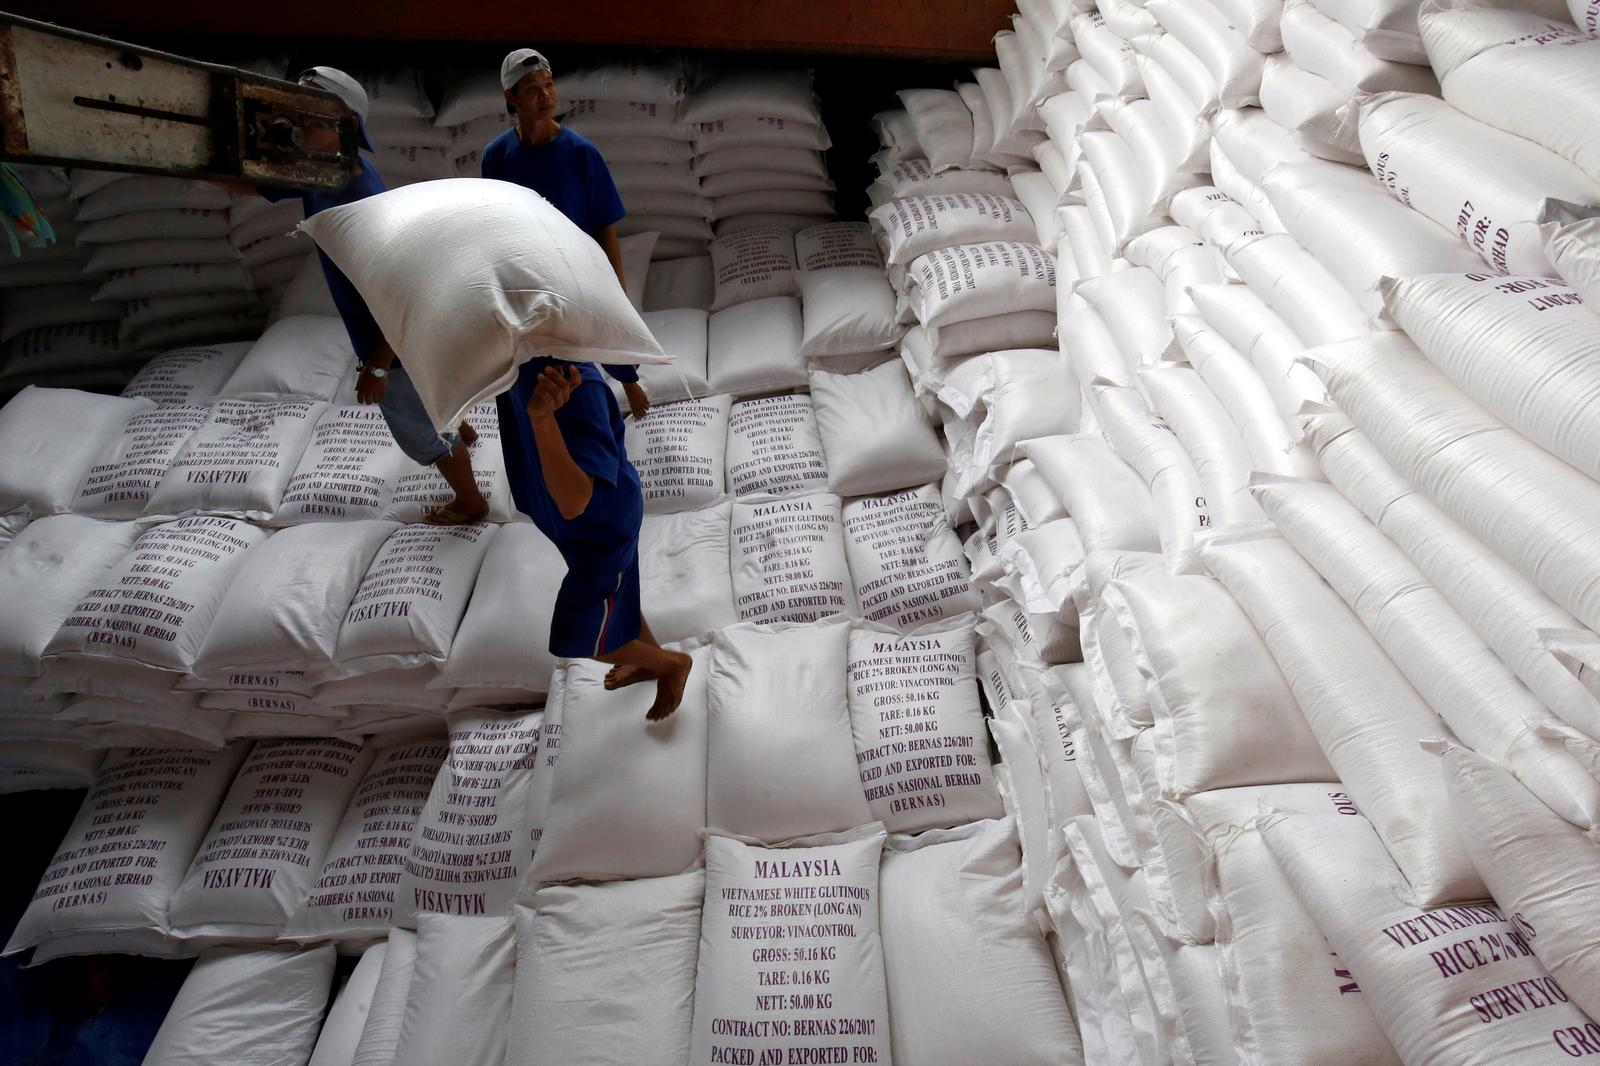 Asia rice-Thai prices hit 6-month high, Vietnam rates elevated on supply woes